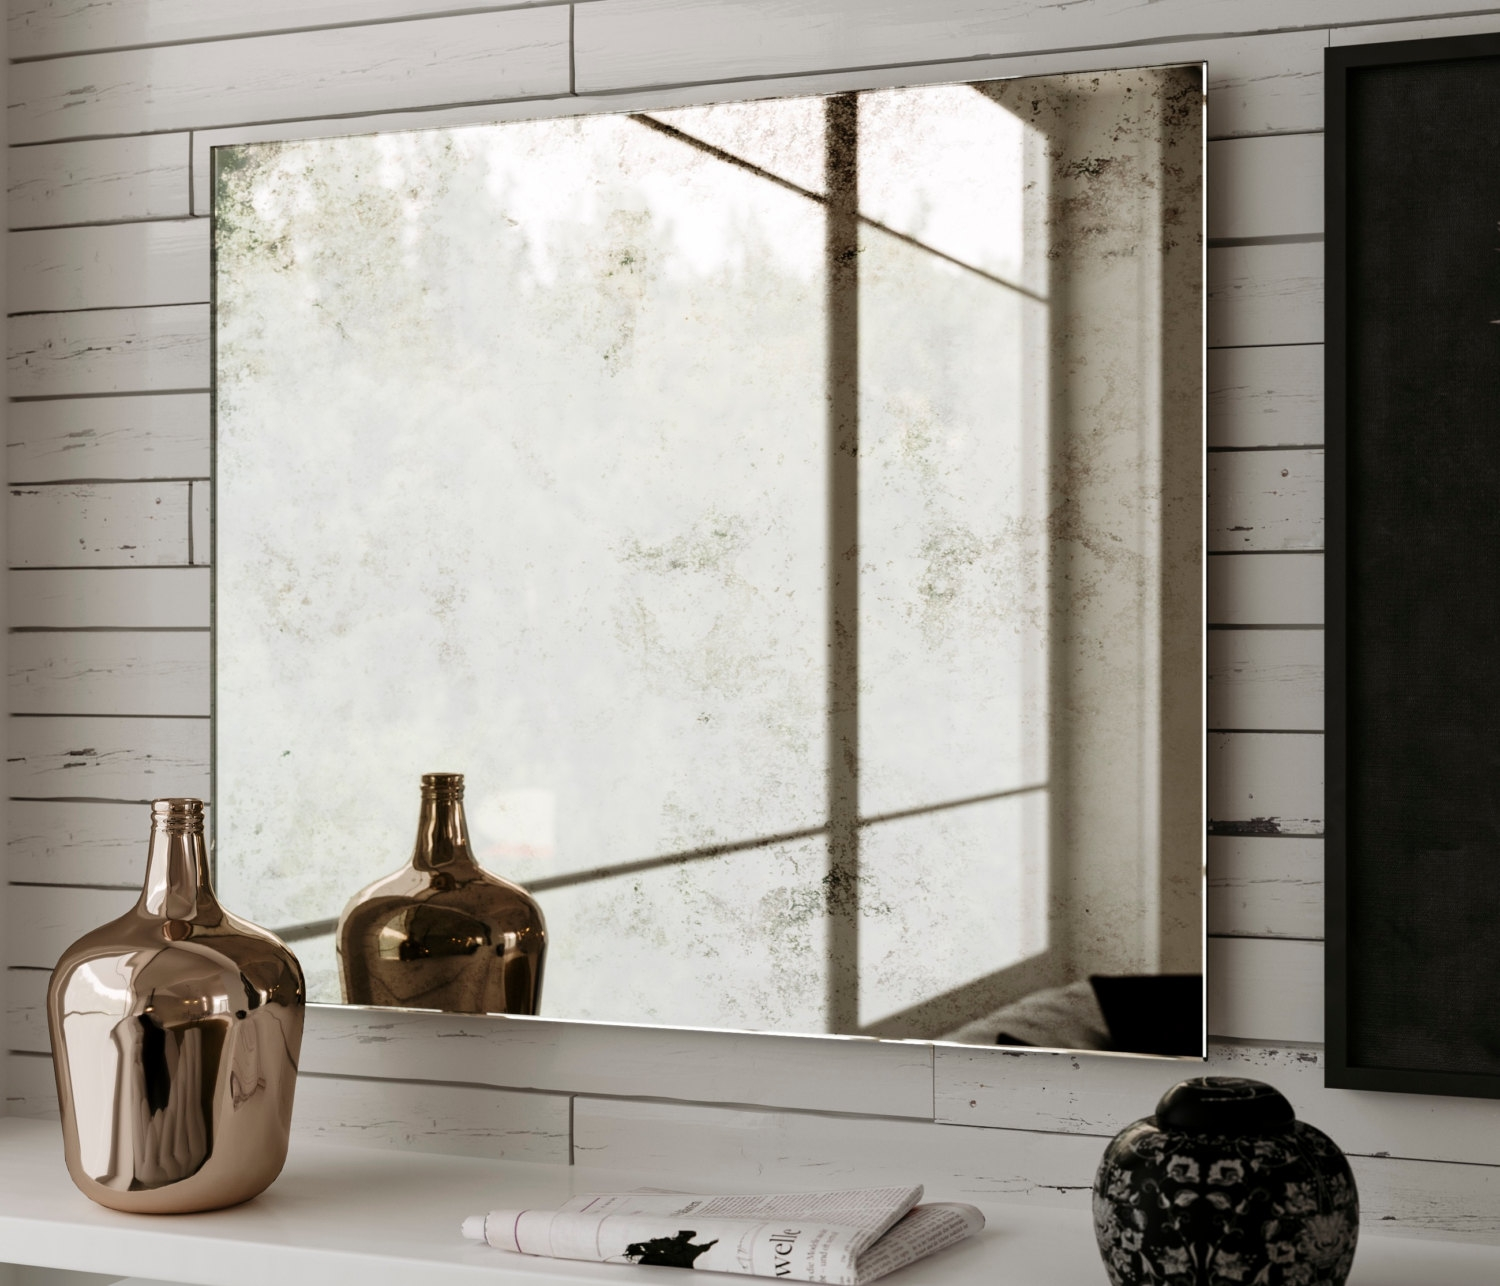 Permalink to Large Wall Mirror Frameless